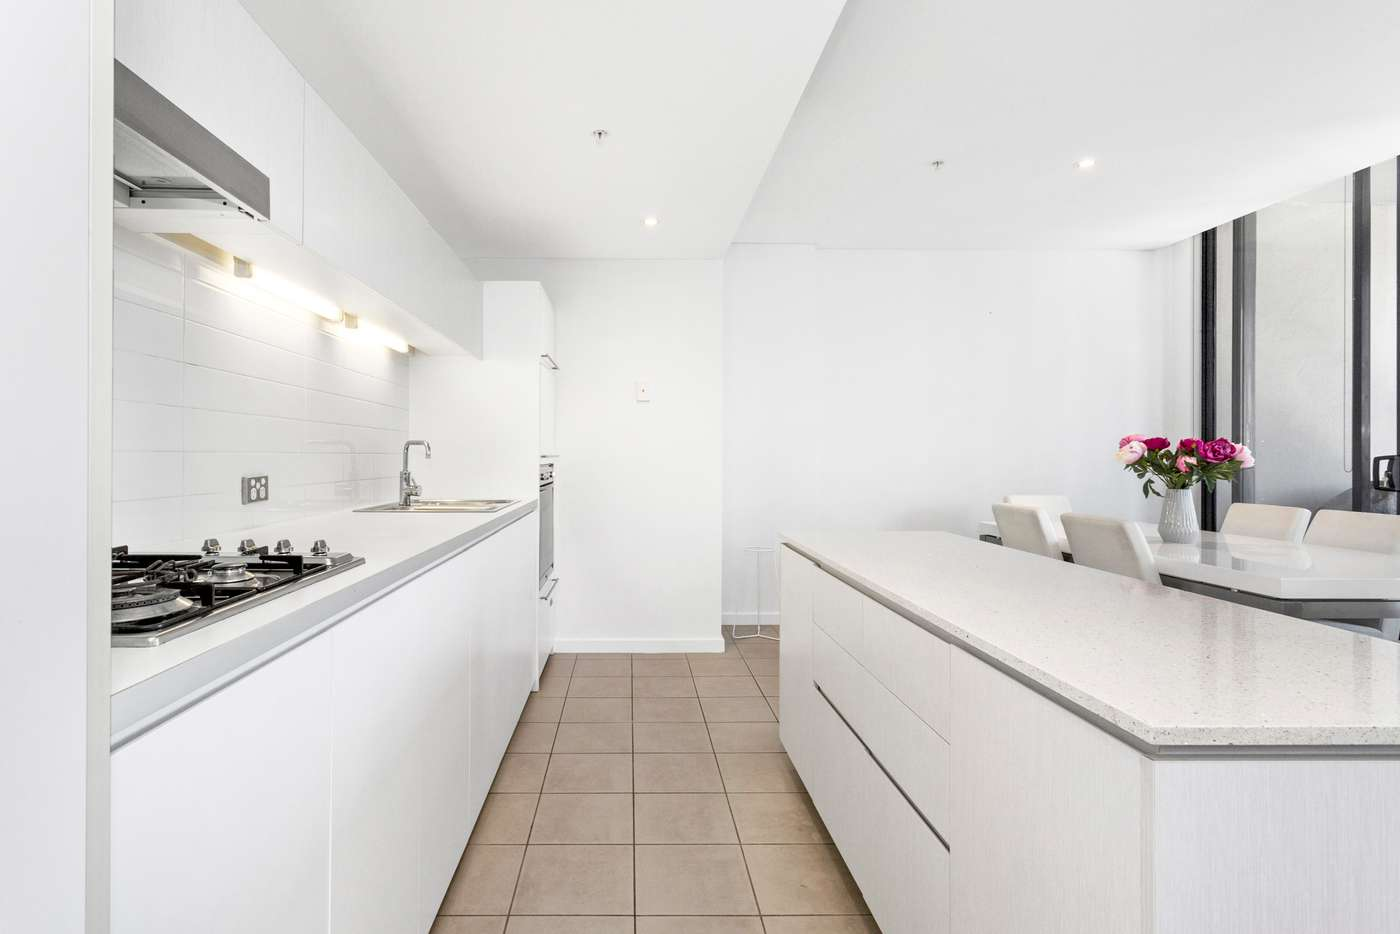 Fifth view of Homely apartment listing, 1007/700 Chapel Street, South Yarra VIC 3141